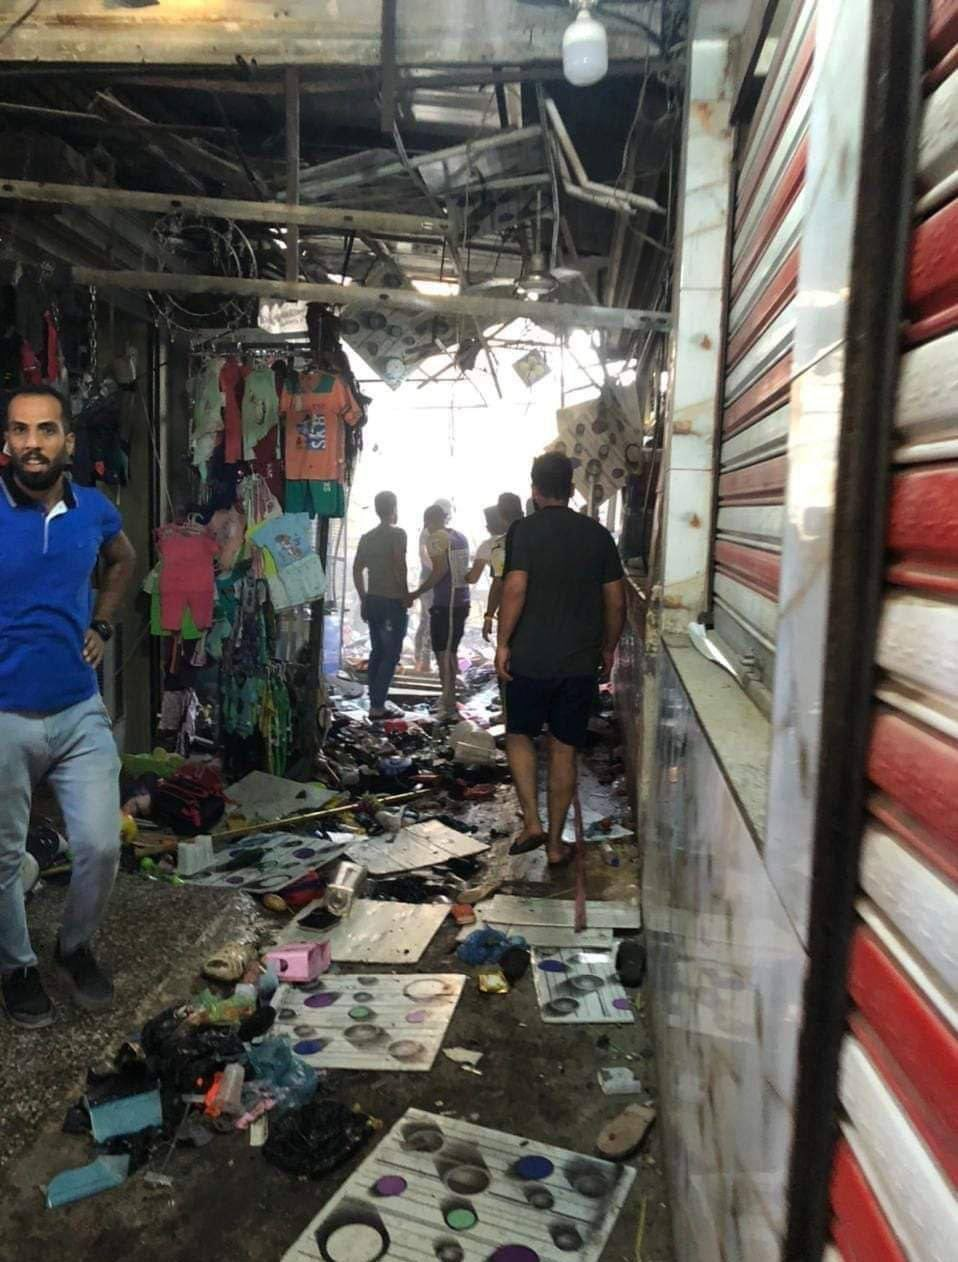 Dozens Killed Or Injured In IED Explosion In Sadr District Of Baghdad (Photos, Video)